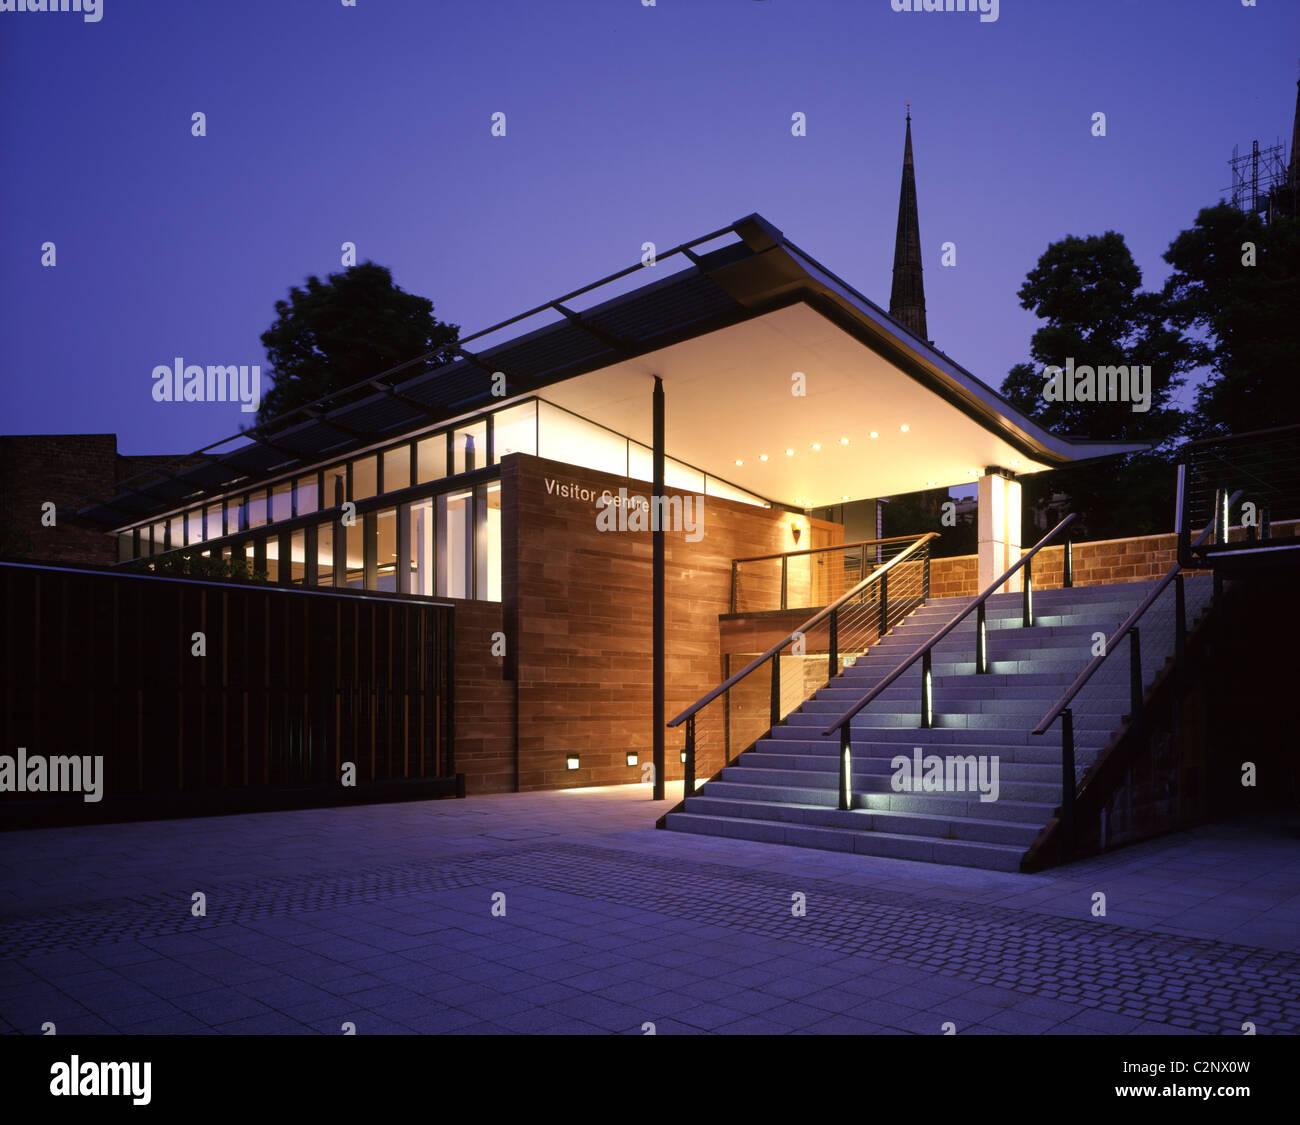 Visitor Interpretation Centre, Coventry. Front entrance to Visitor Centre dusk. - Stock Image